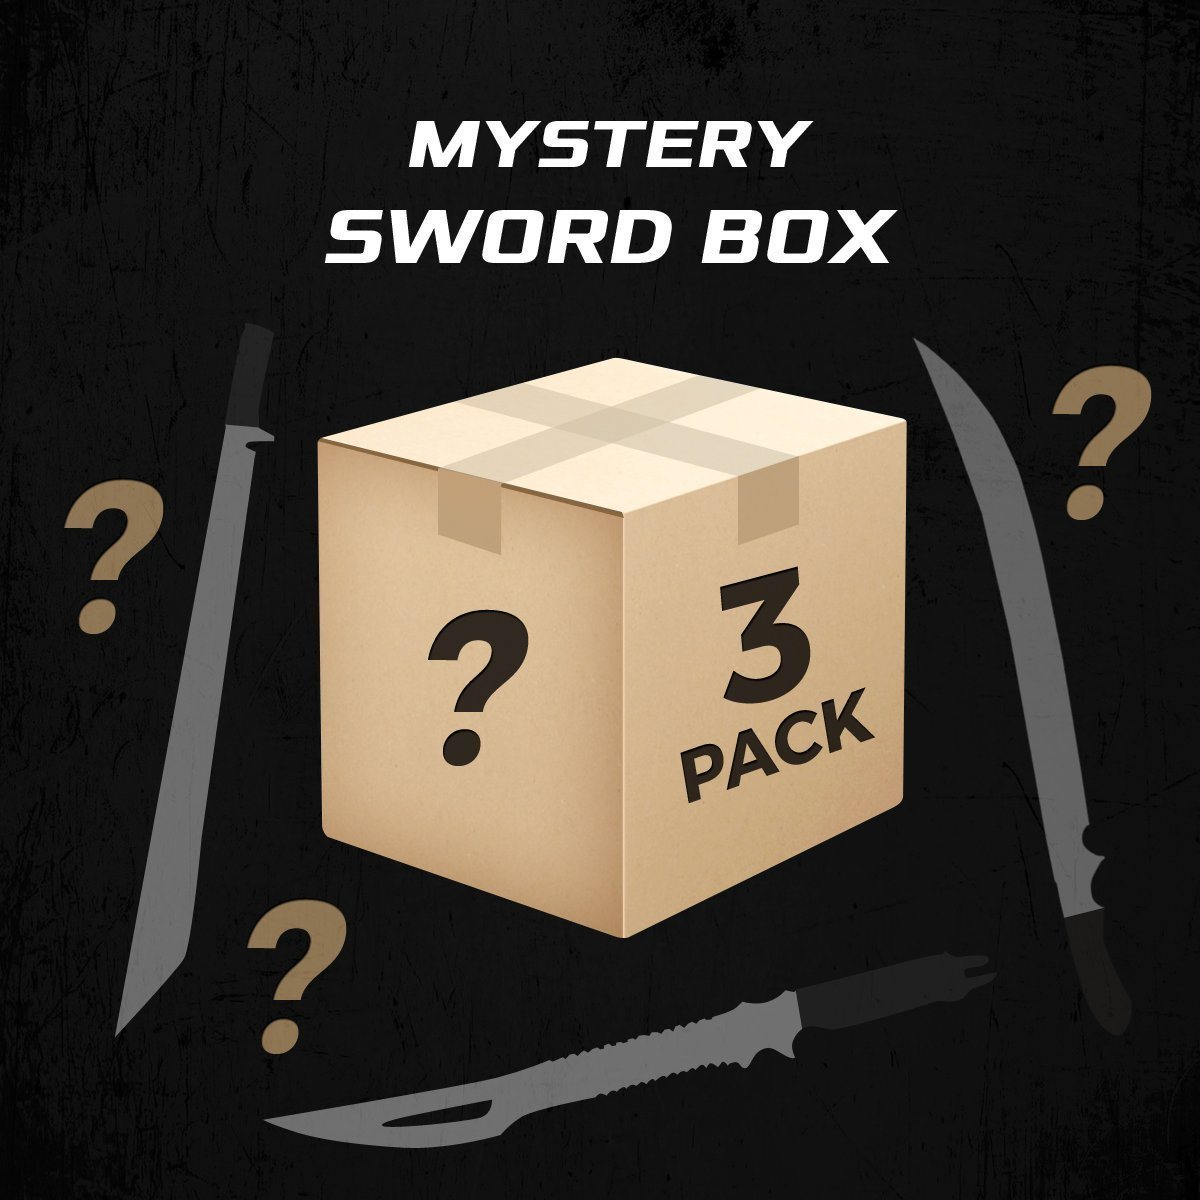 Mystery Sword 3 Pack (3 swords) - Blade City